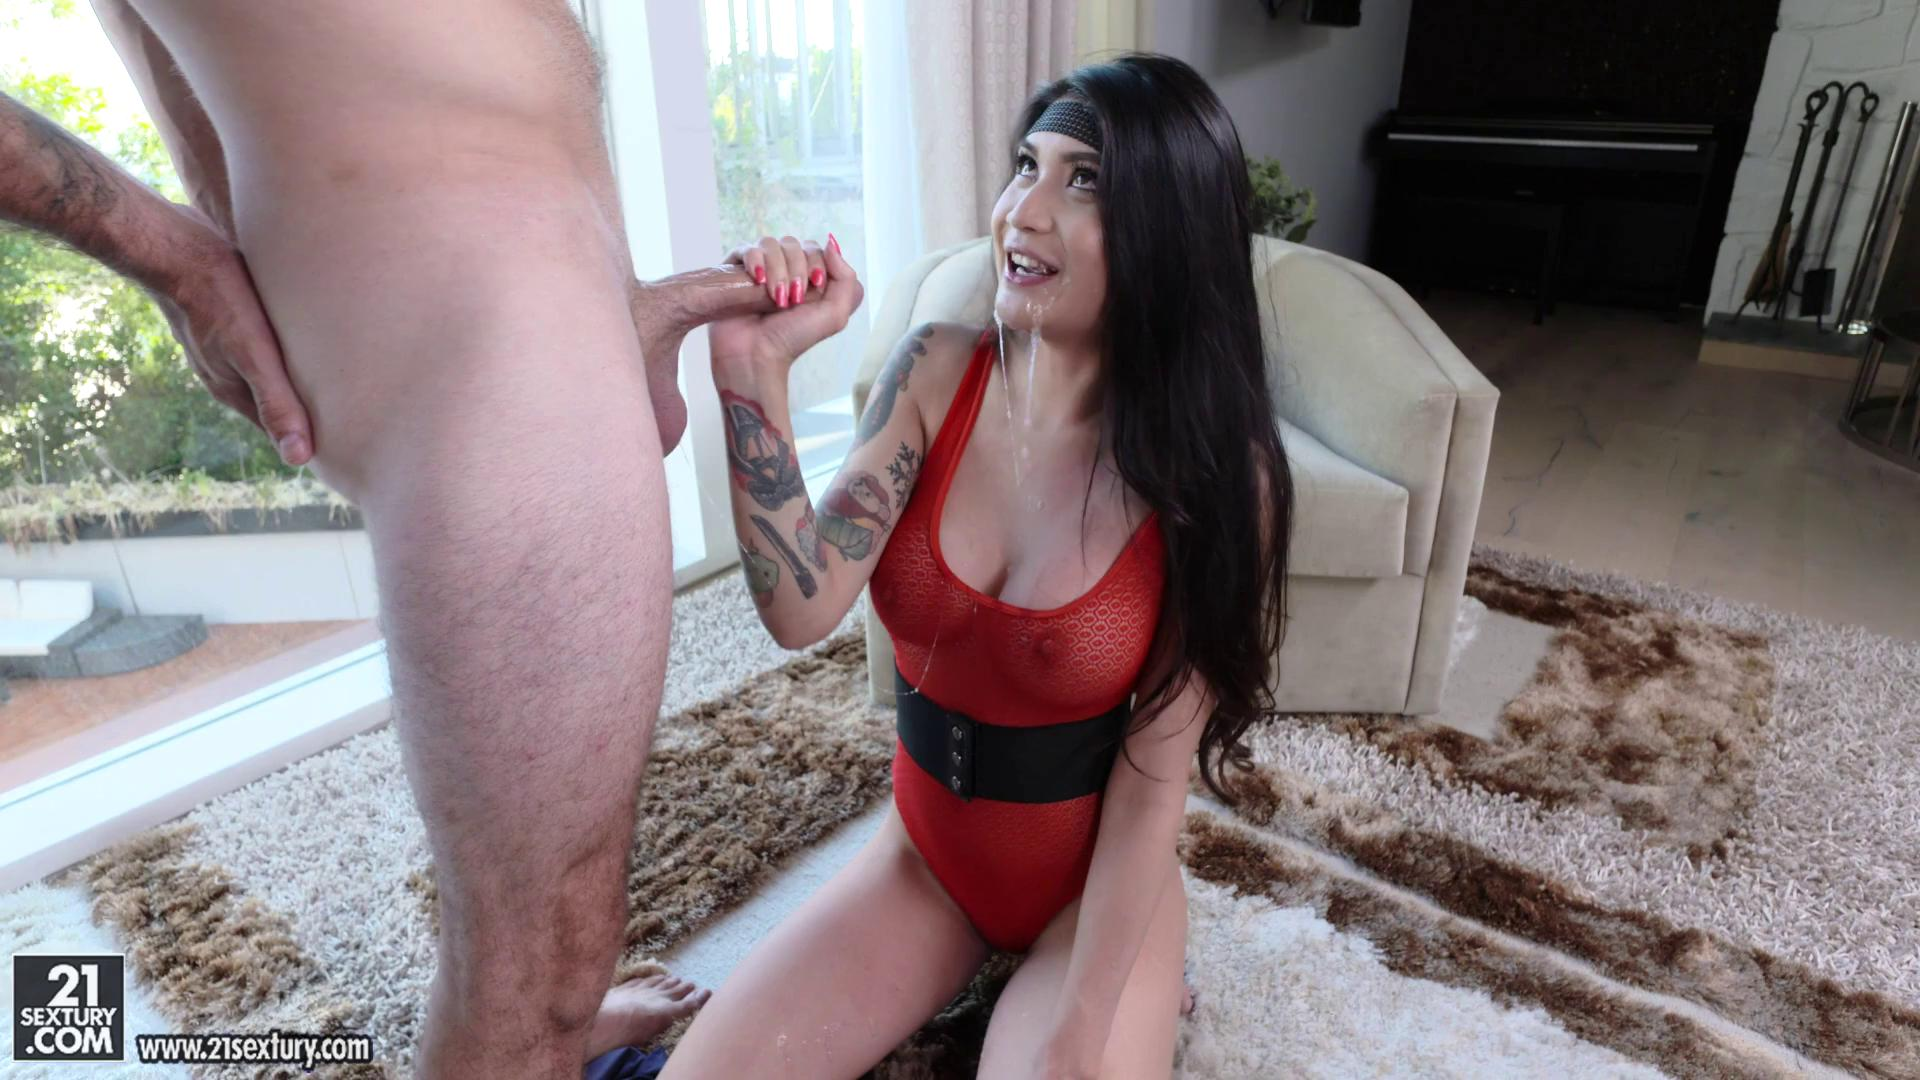 ClubSandy – Brenna Sparks Stretching Routine